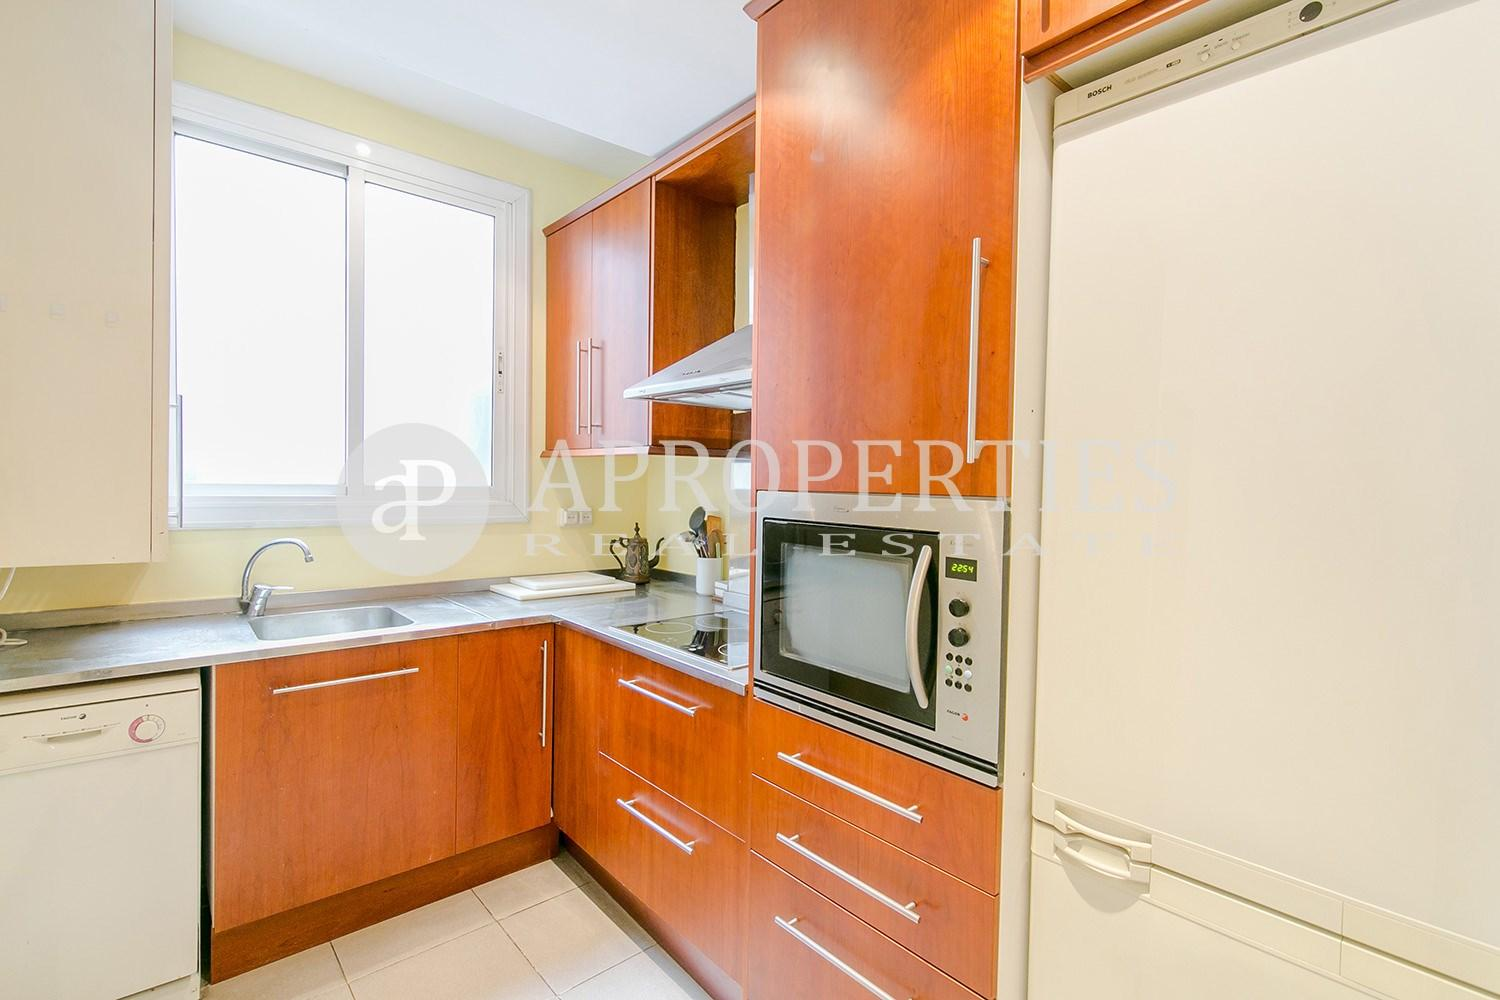 Appartement meubl louer rue sep lveda for Appartement meuble a louer